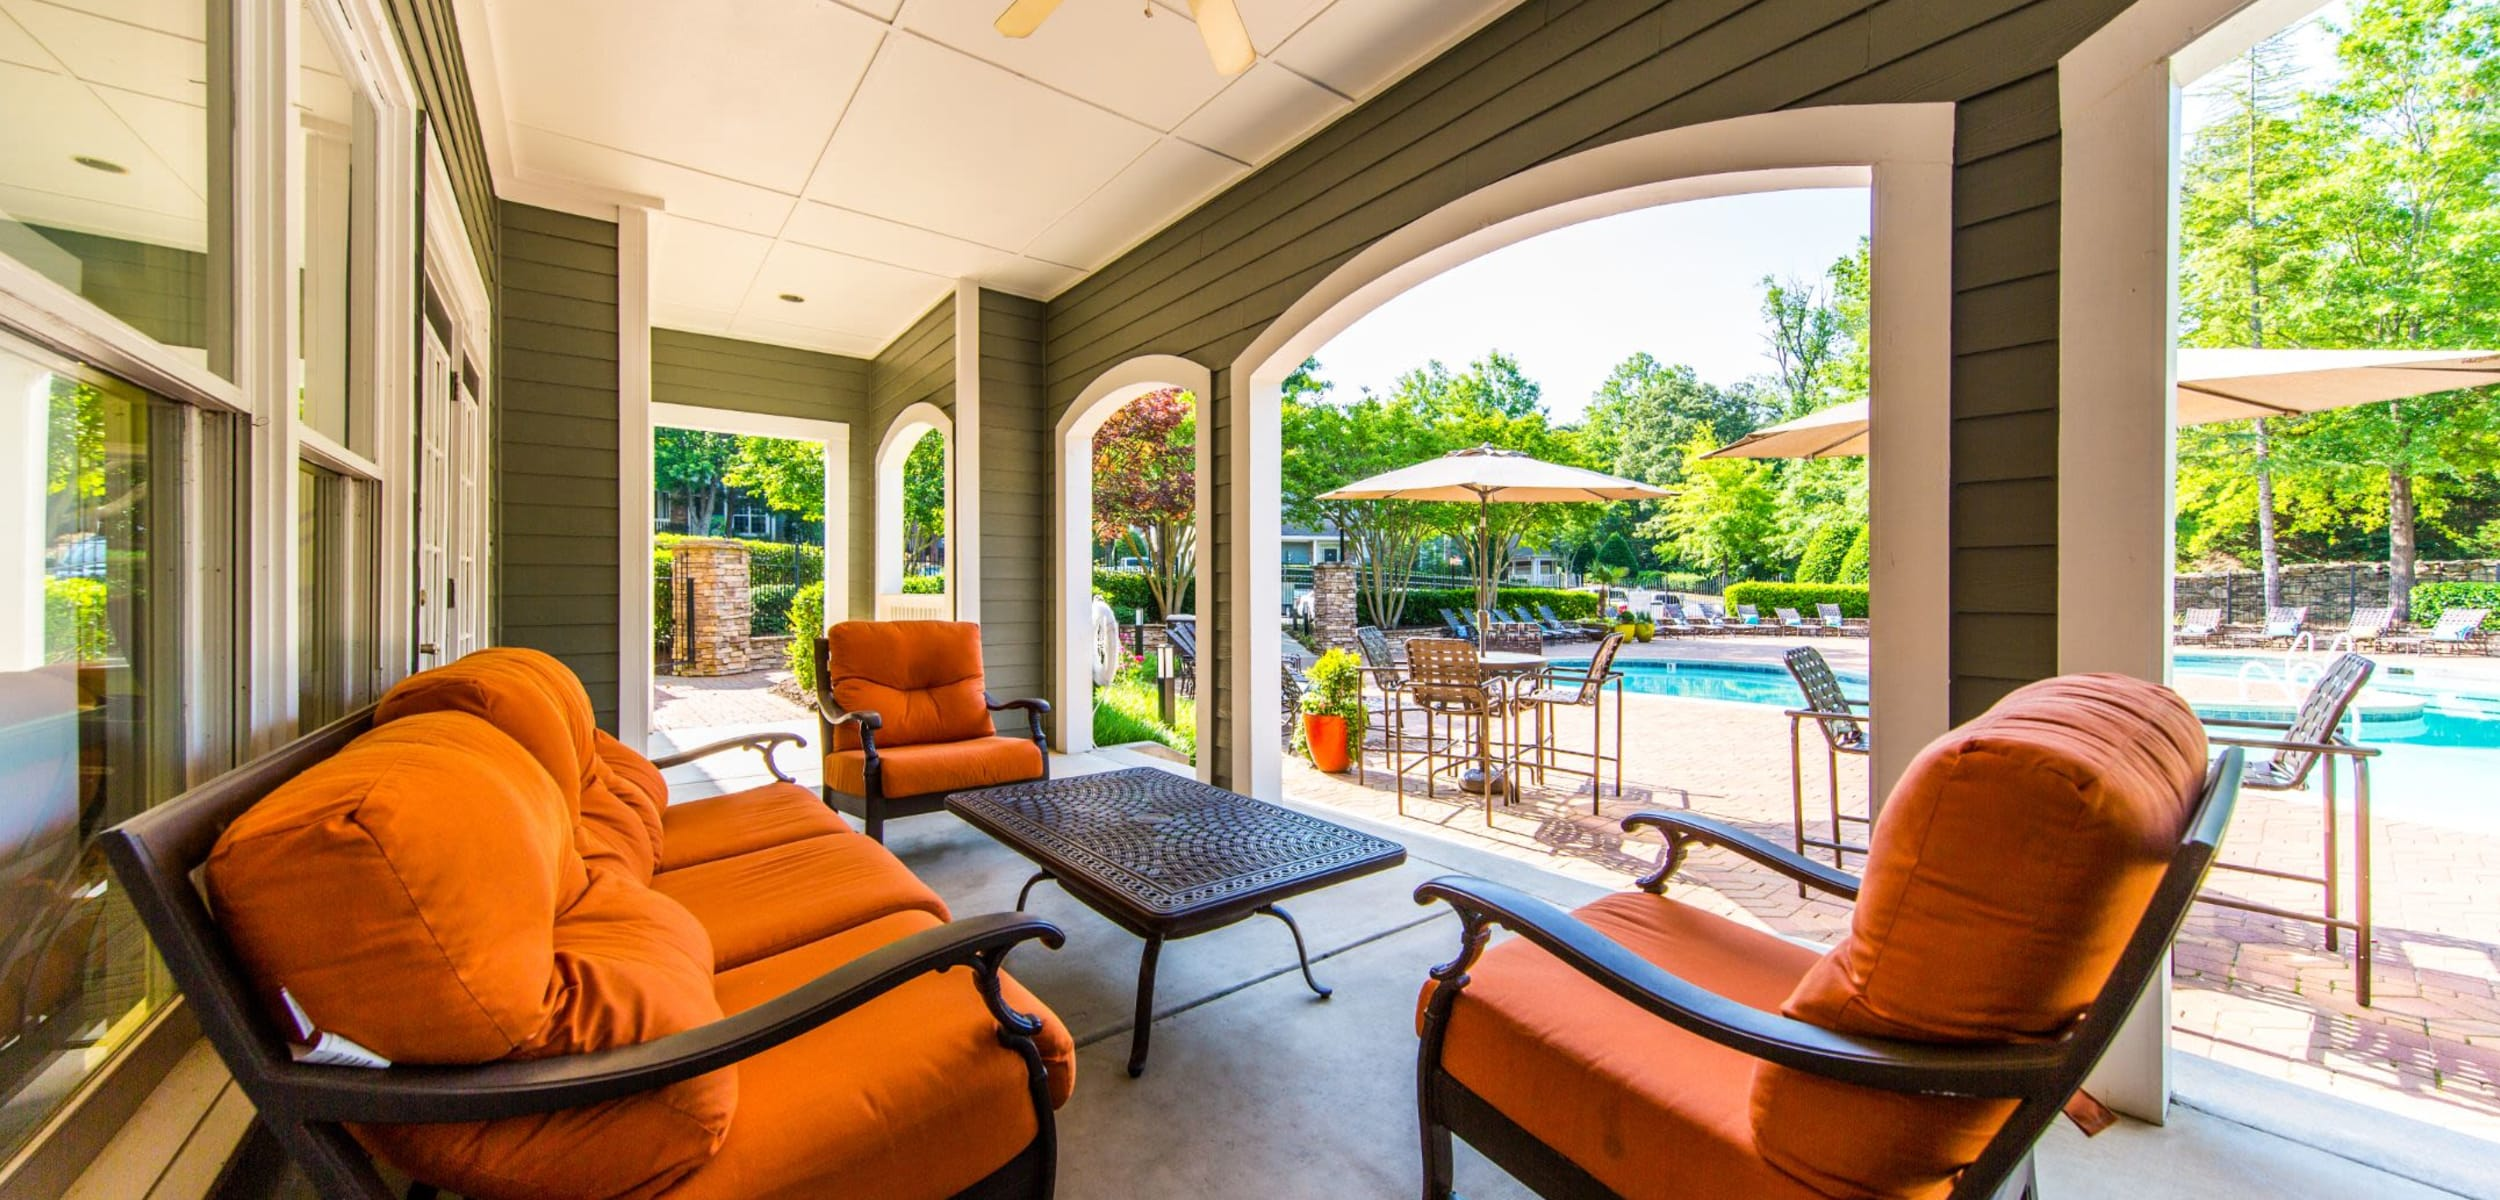 Bright outdoor seating area near the pool at Marquis on Edwards Mill in Raleigh, North Carolina